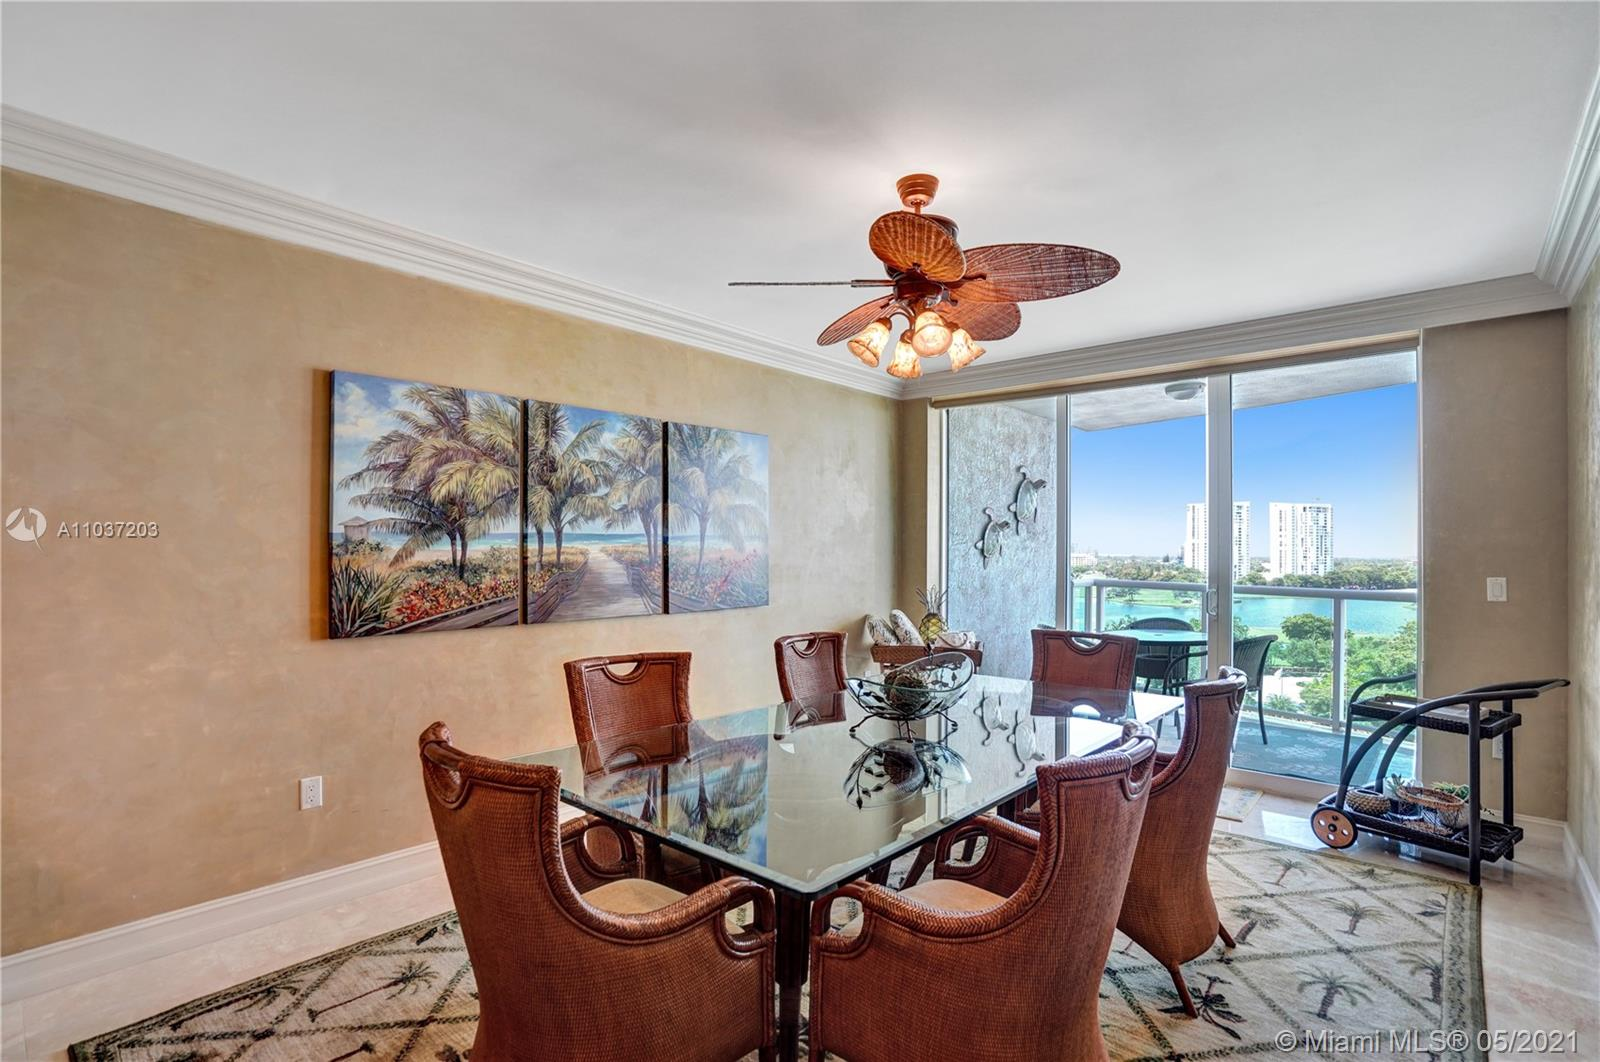 Photo of 20201 Country Club Dr #1006, Aventura, Florida, 33180 - Kitchen and stools for breakfast.